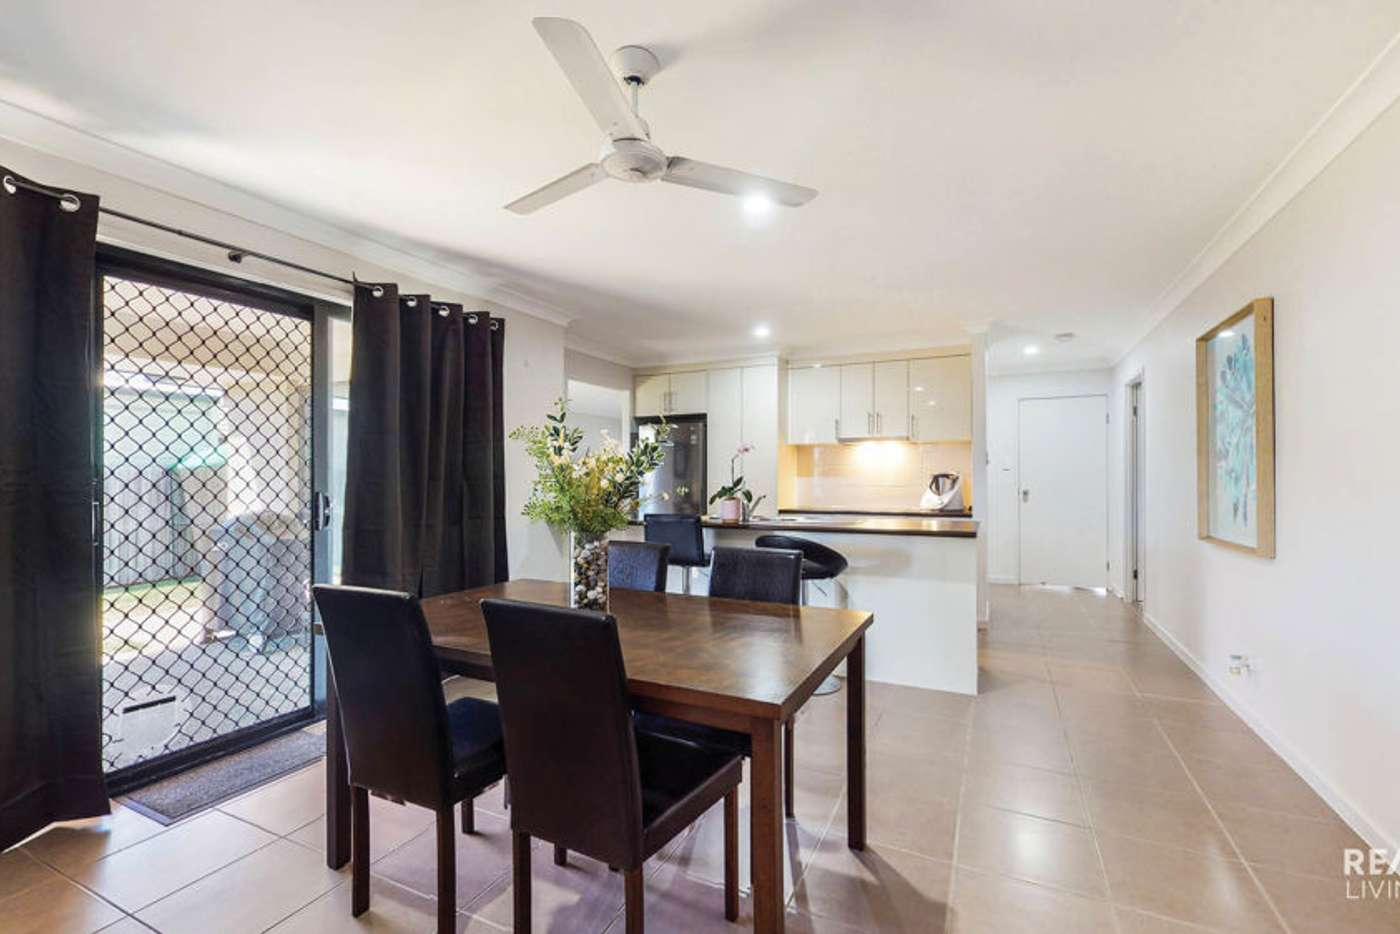 Fifth view of Homely house listing, 46 Hedges Avenue, Burpengary QLD 4505